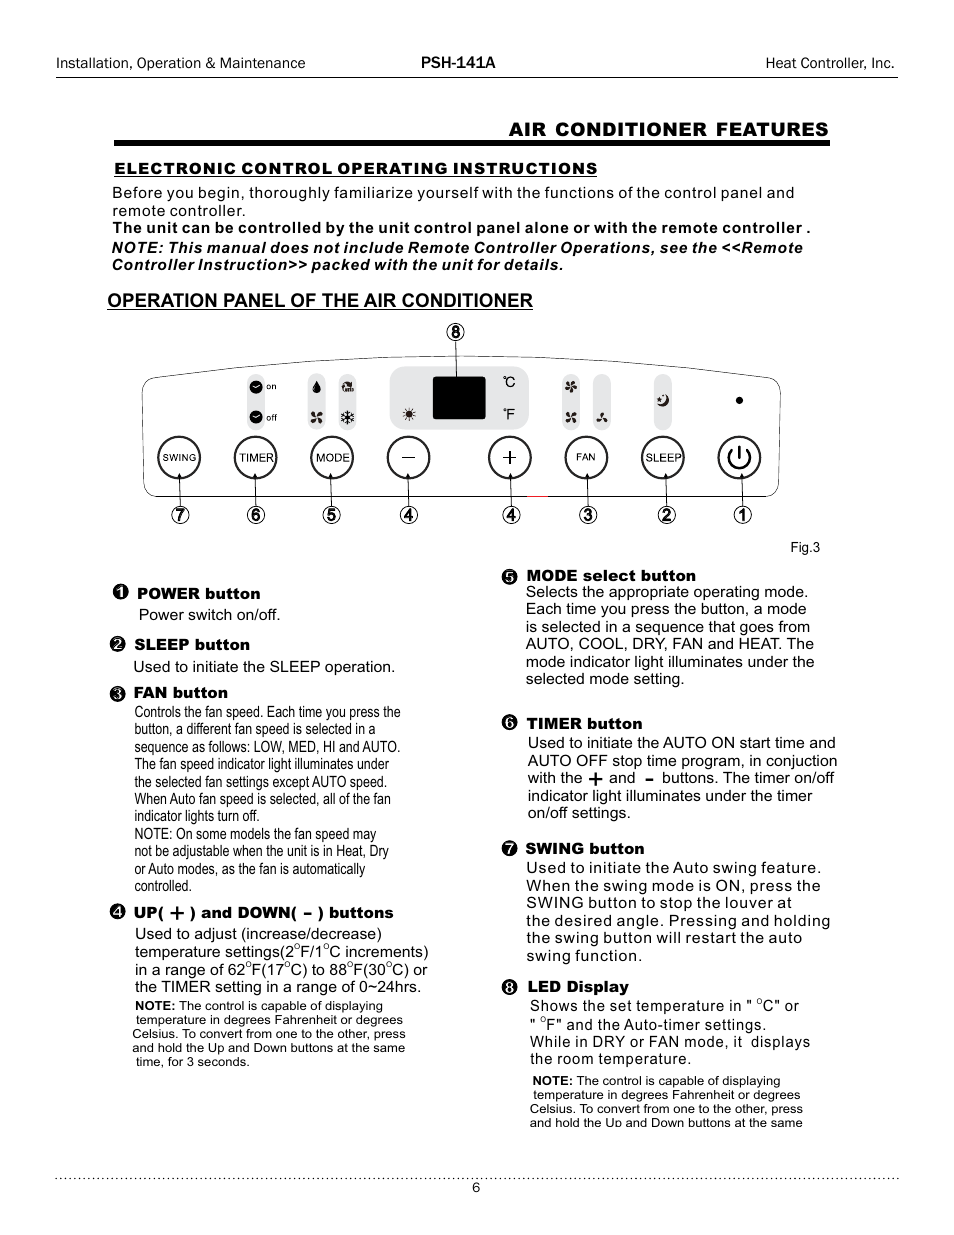 Operation panel of the air conditioner | Comfort-Aire PSH-141A User Manual |